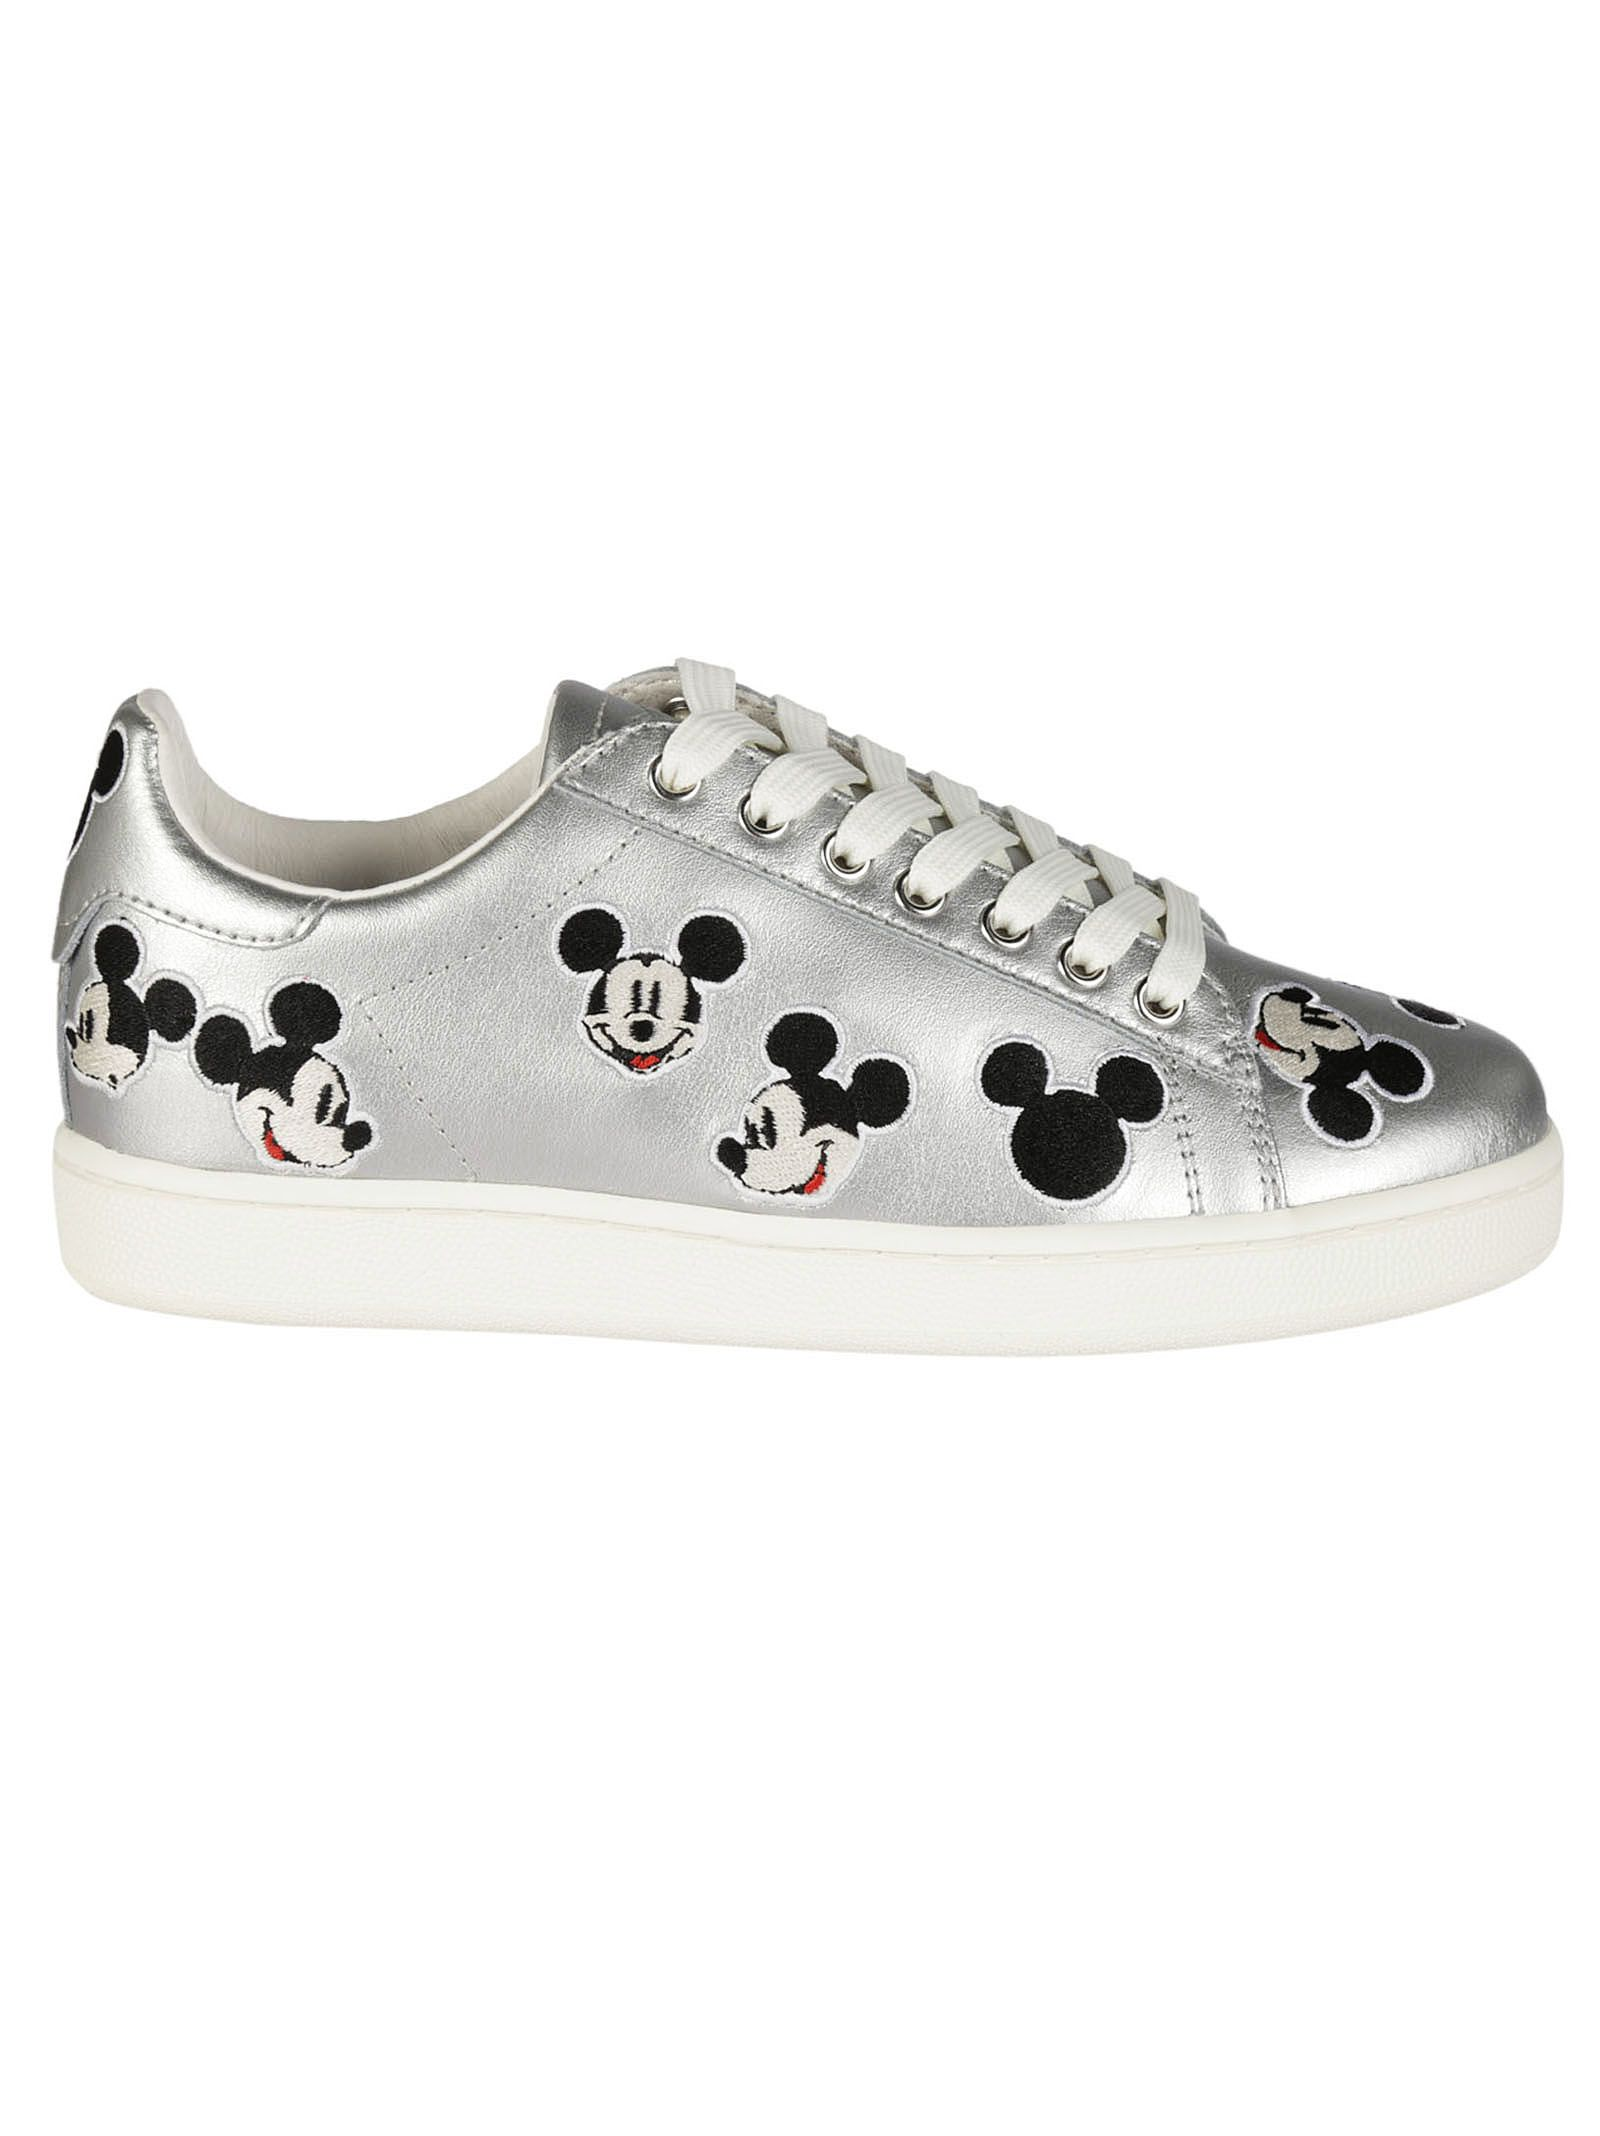 Mickey Mouse platform sneakers - Metallic MOA Master Of Arts Gx9UuI